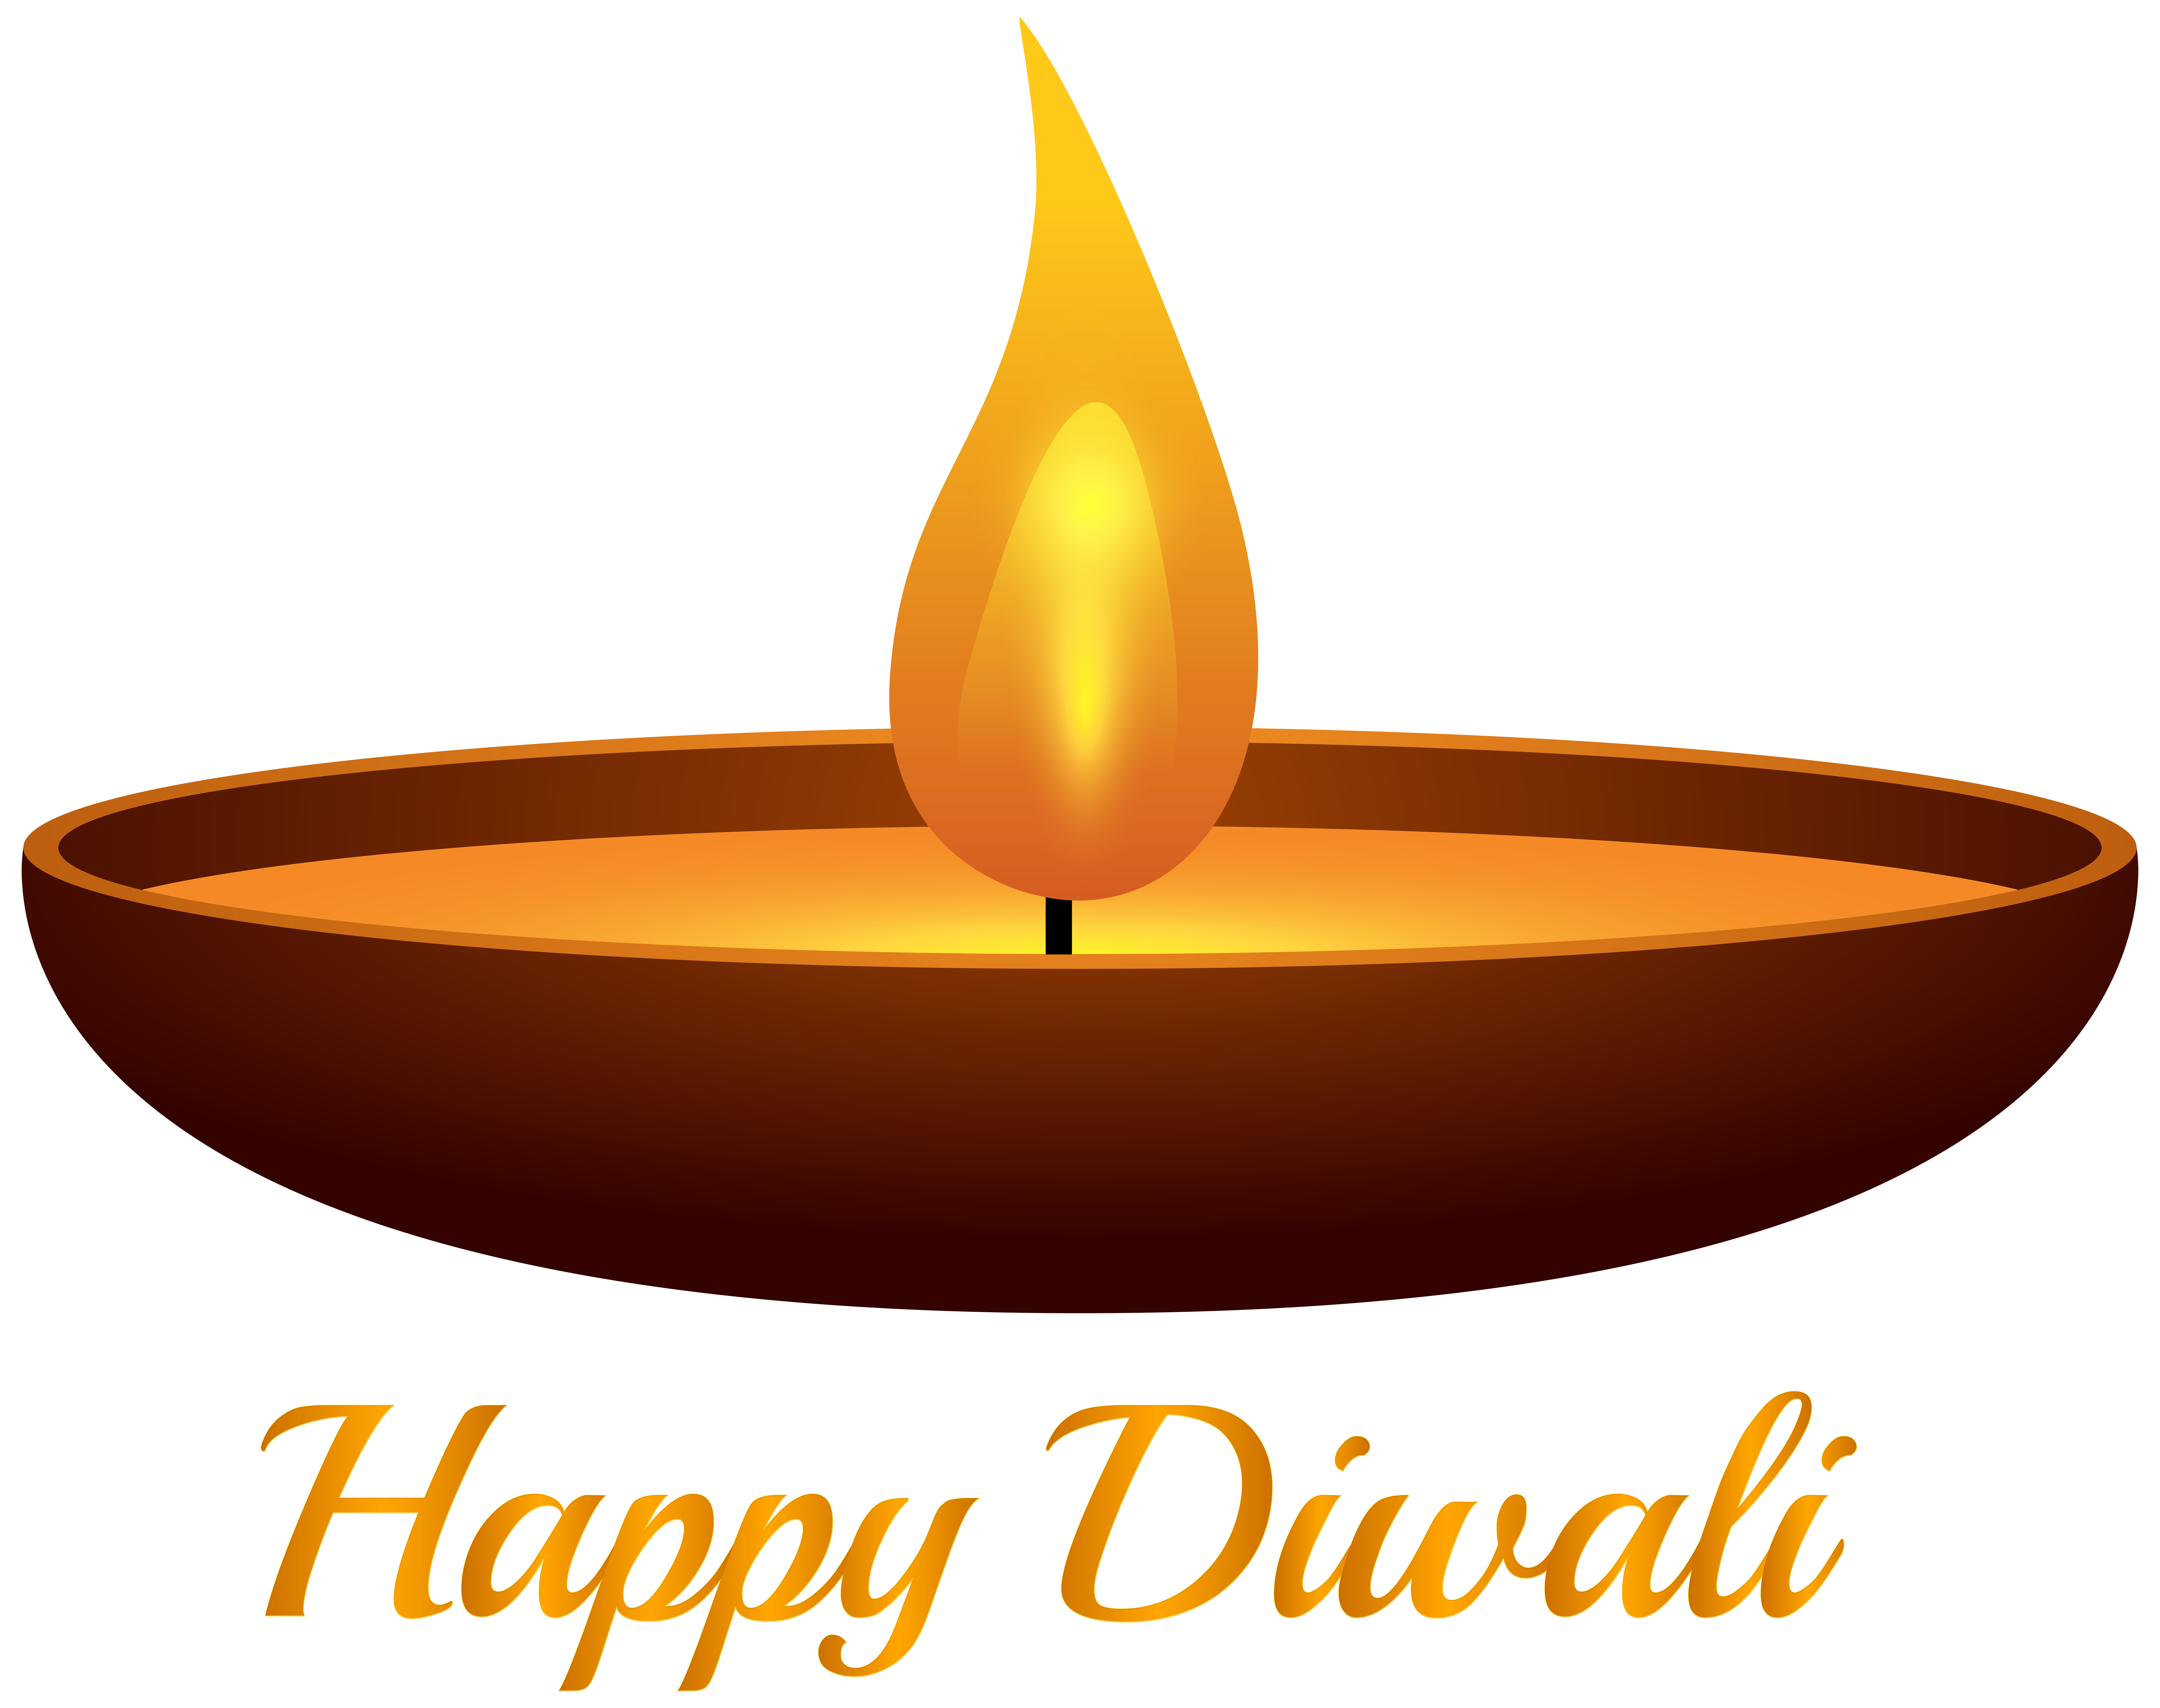 Happy Diwali Candle PNG Clip Art Image.